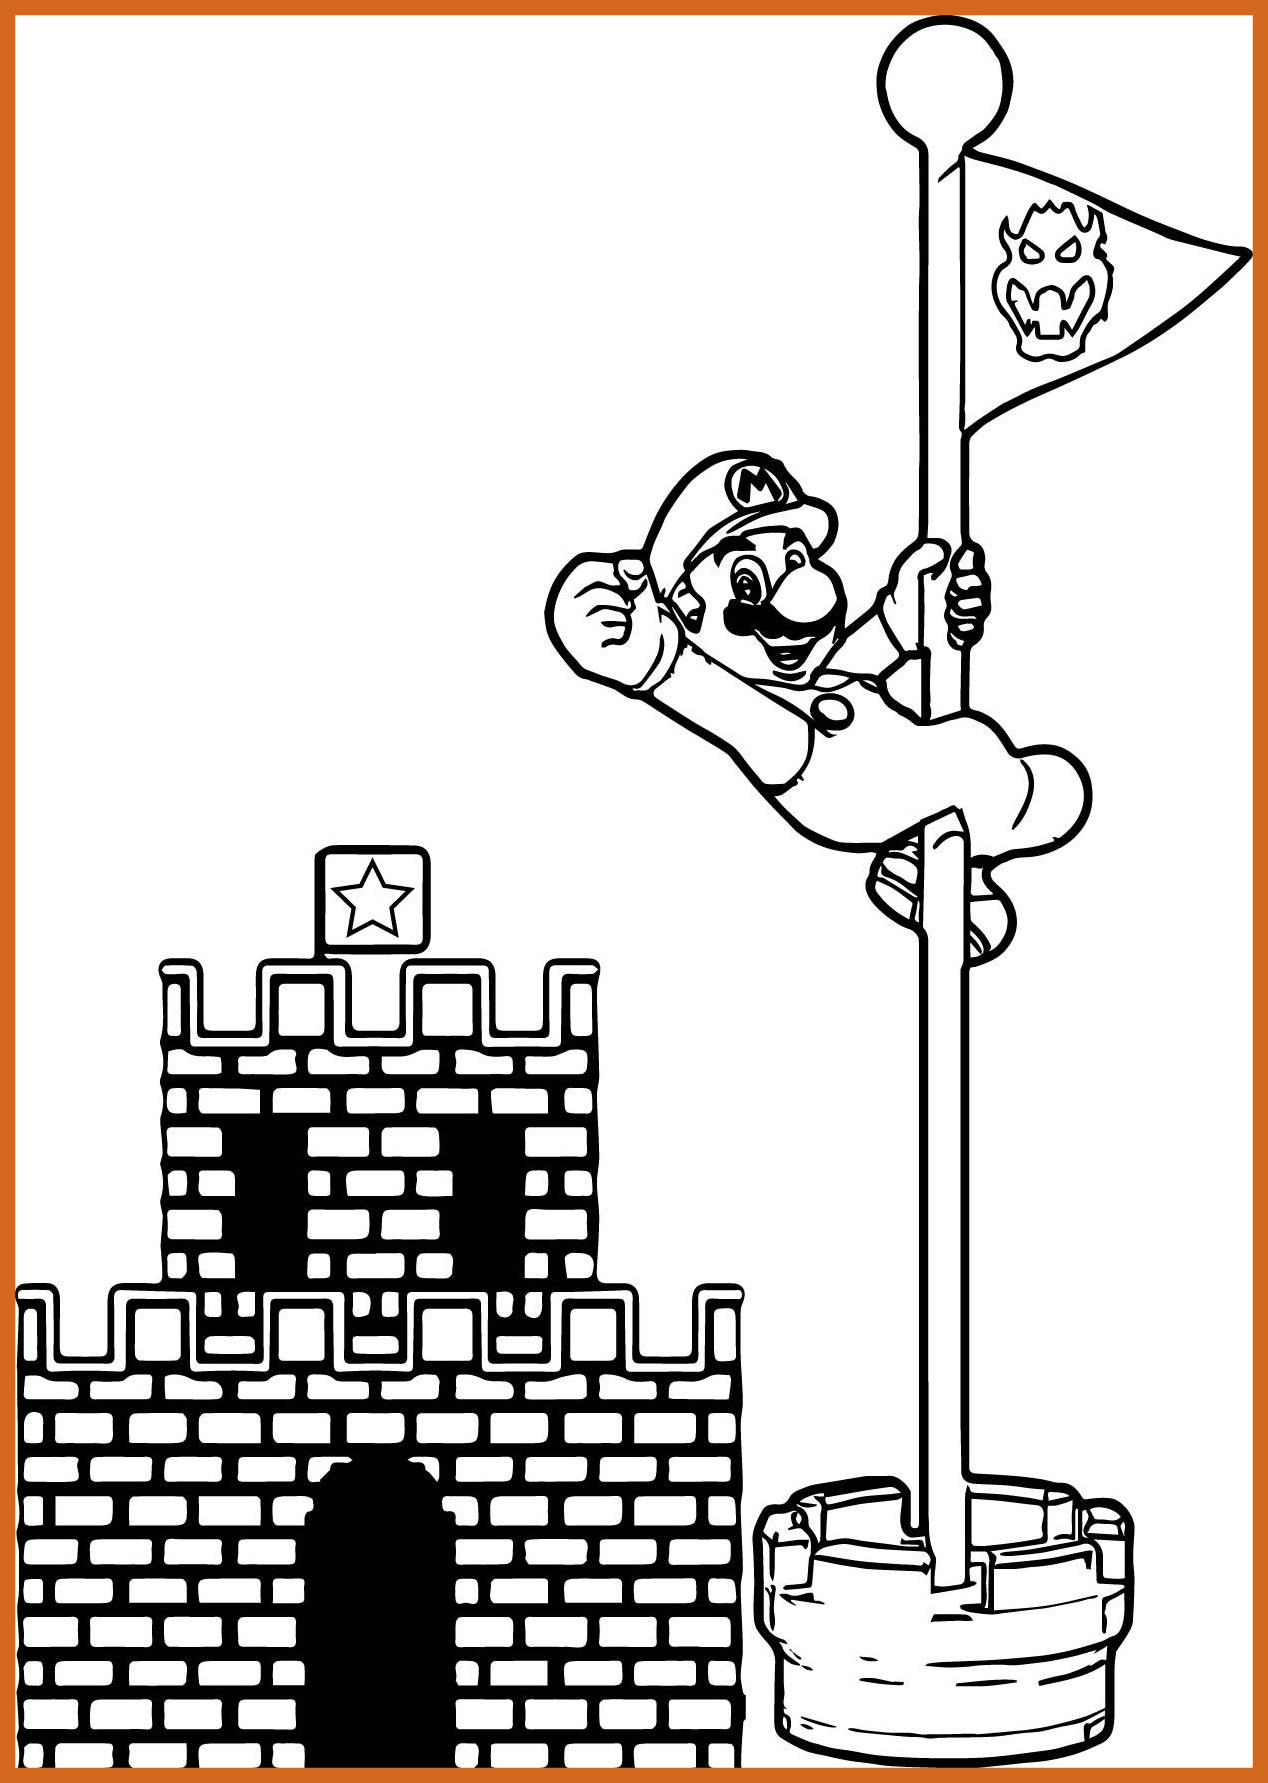 1268x1783 The Best Super Mario Bros Coloring Pages To Print Coloringstar